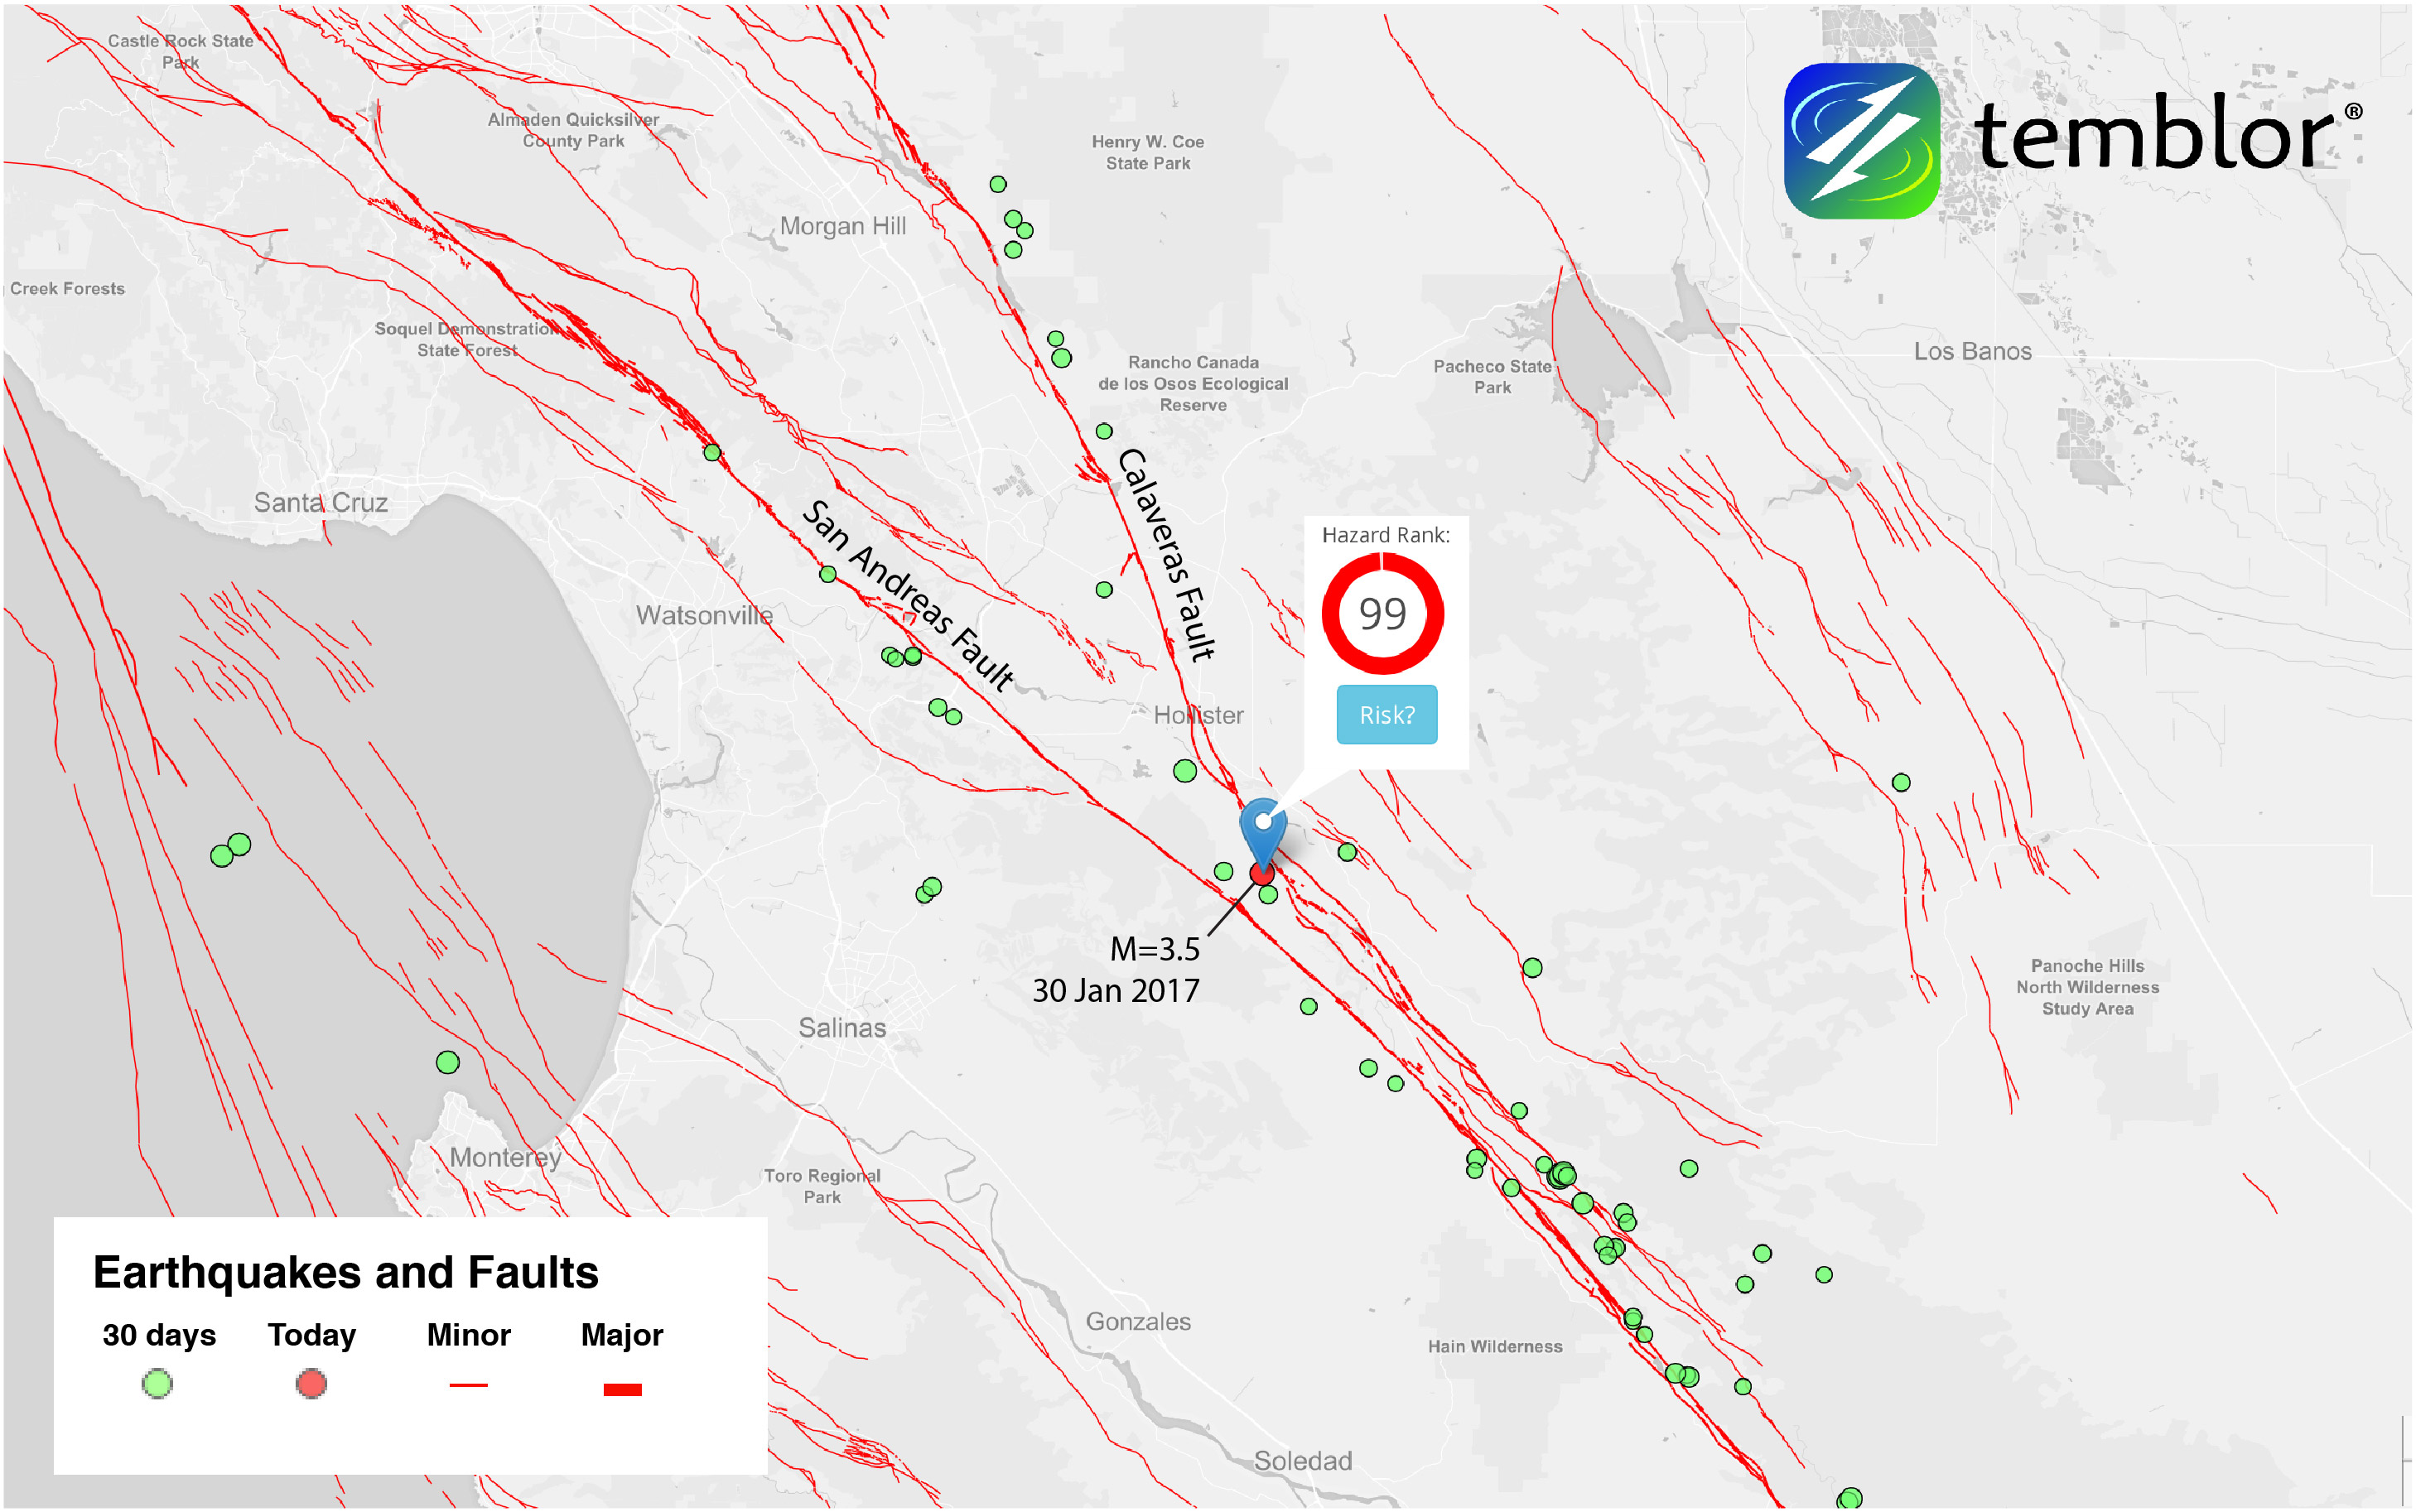 Sanandreasfaultmapcalaverasfaultmapcaliforniaearthquake - Andreas fault map